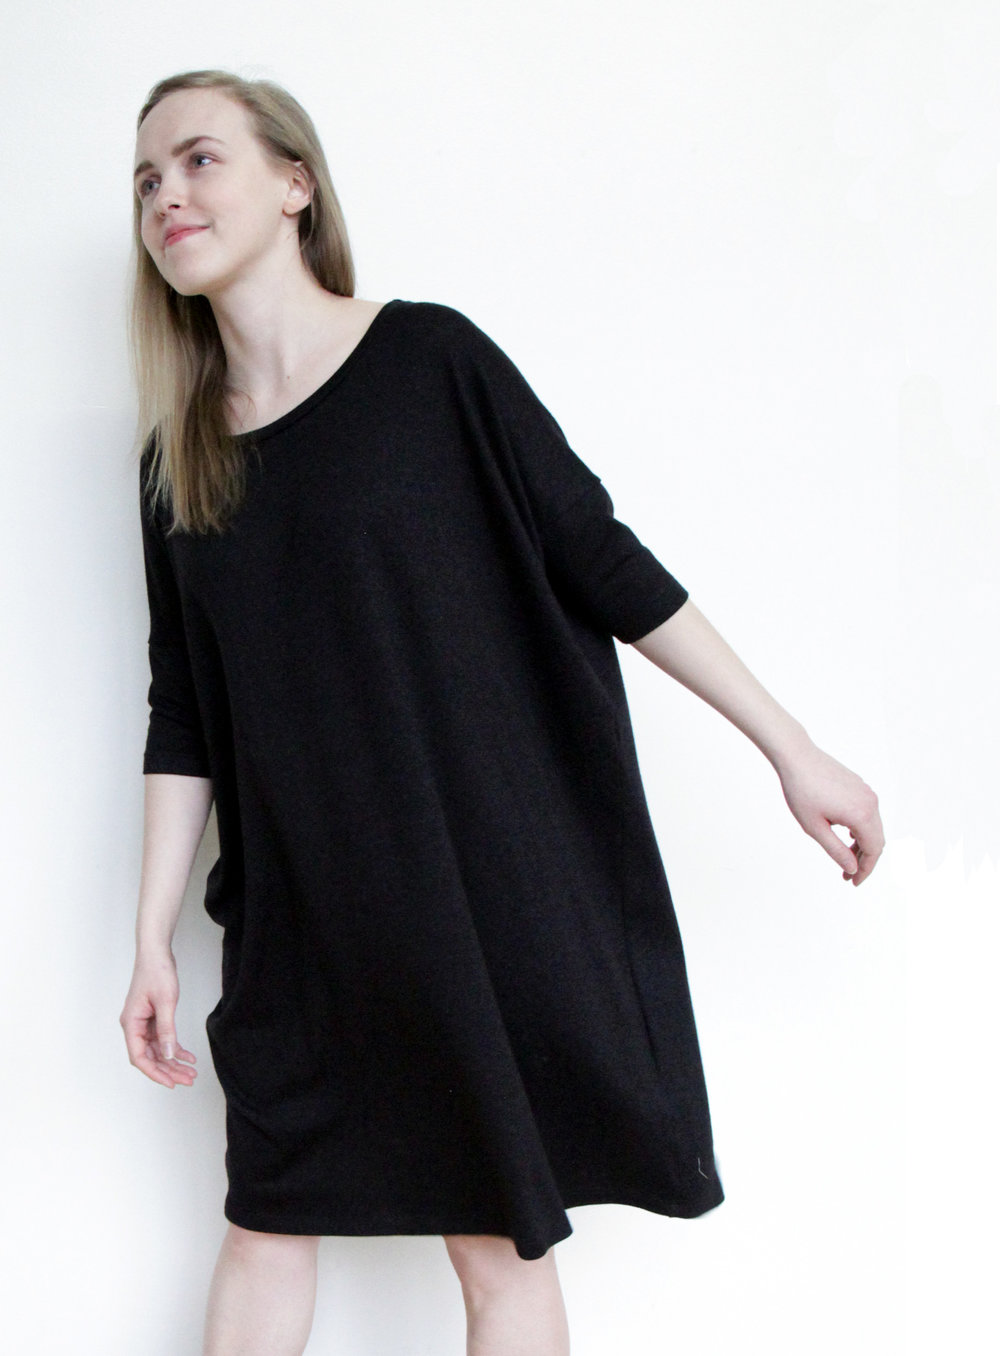 SY908 Sama Shift Dress - Black - FRONT CROP 1.jpg